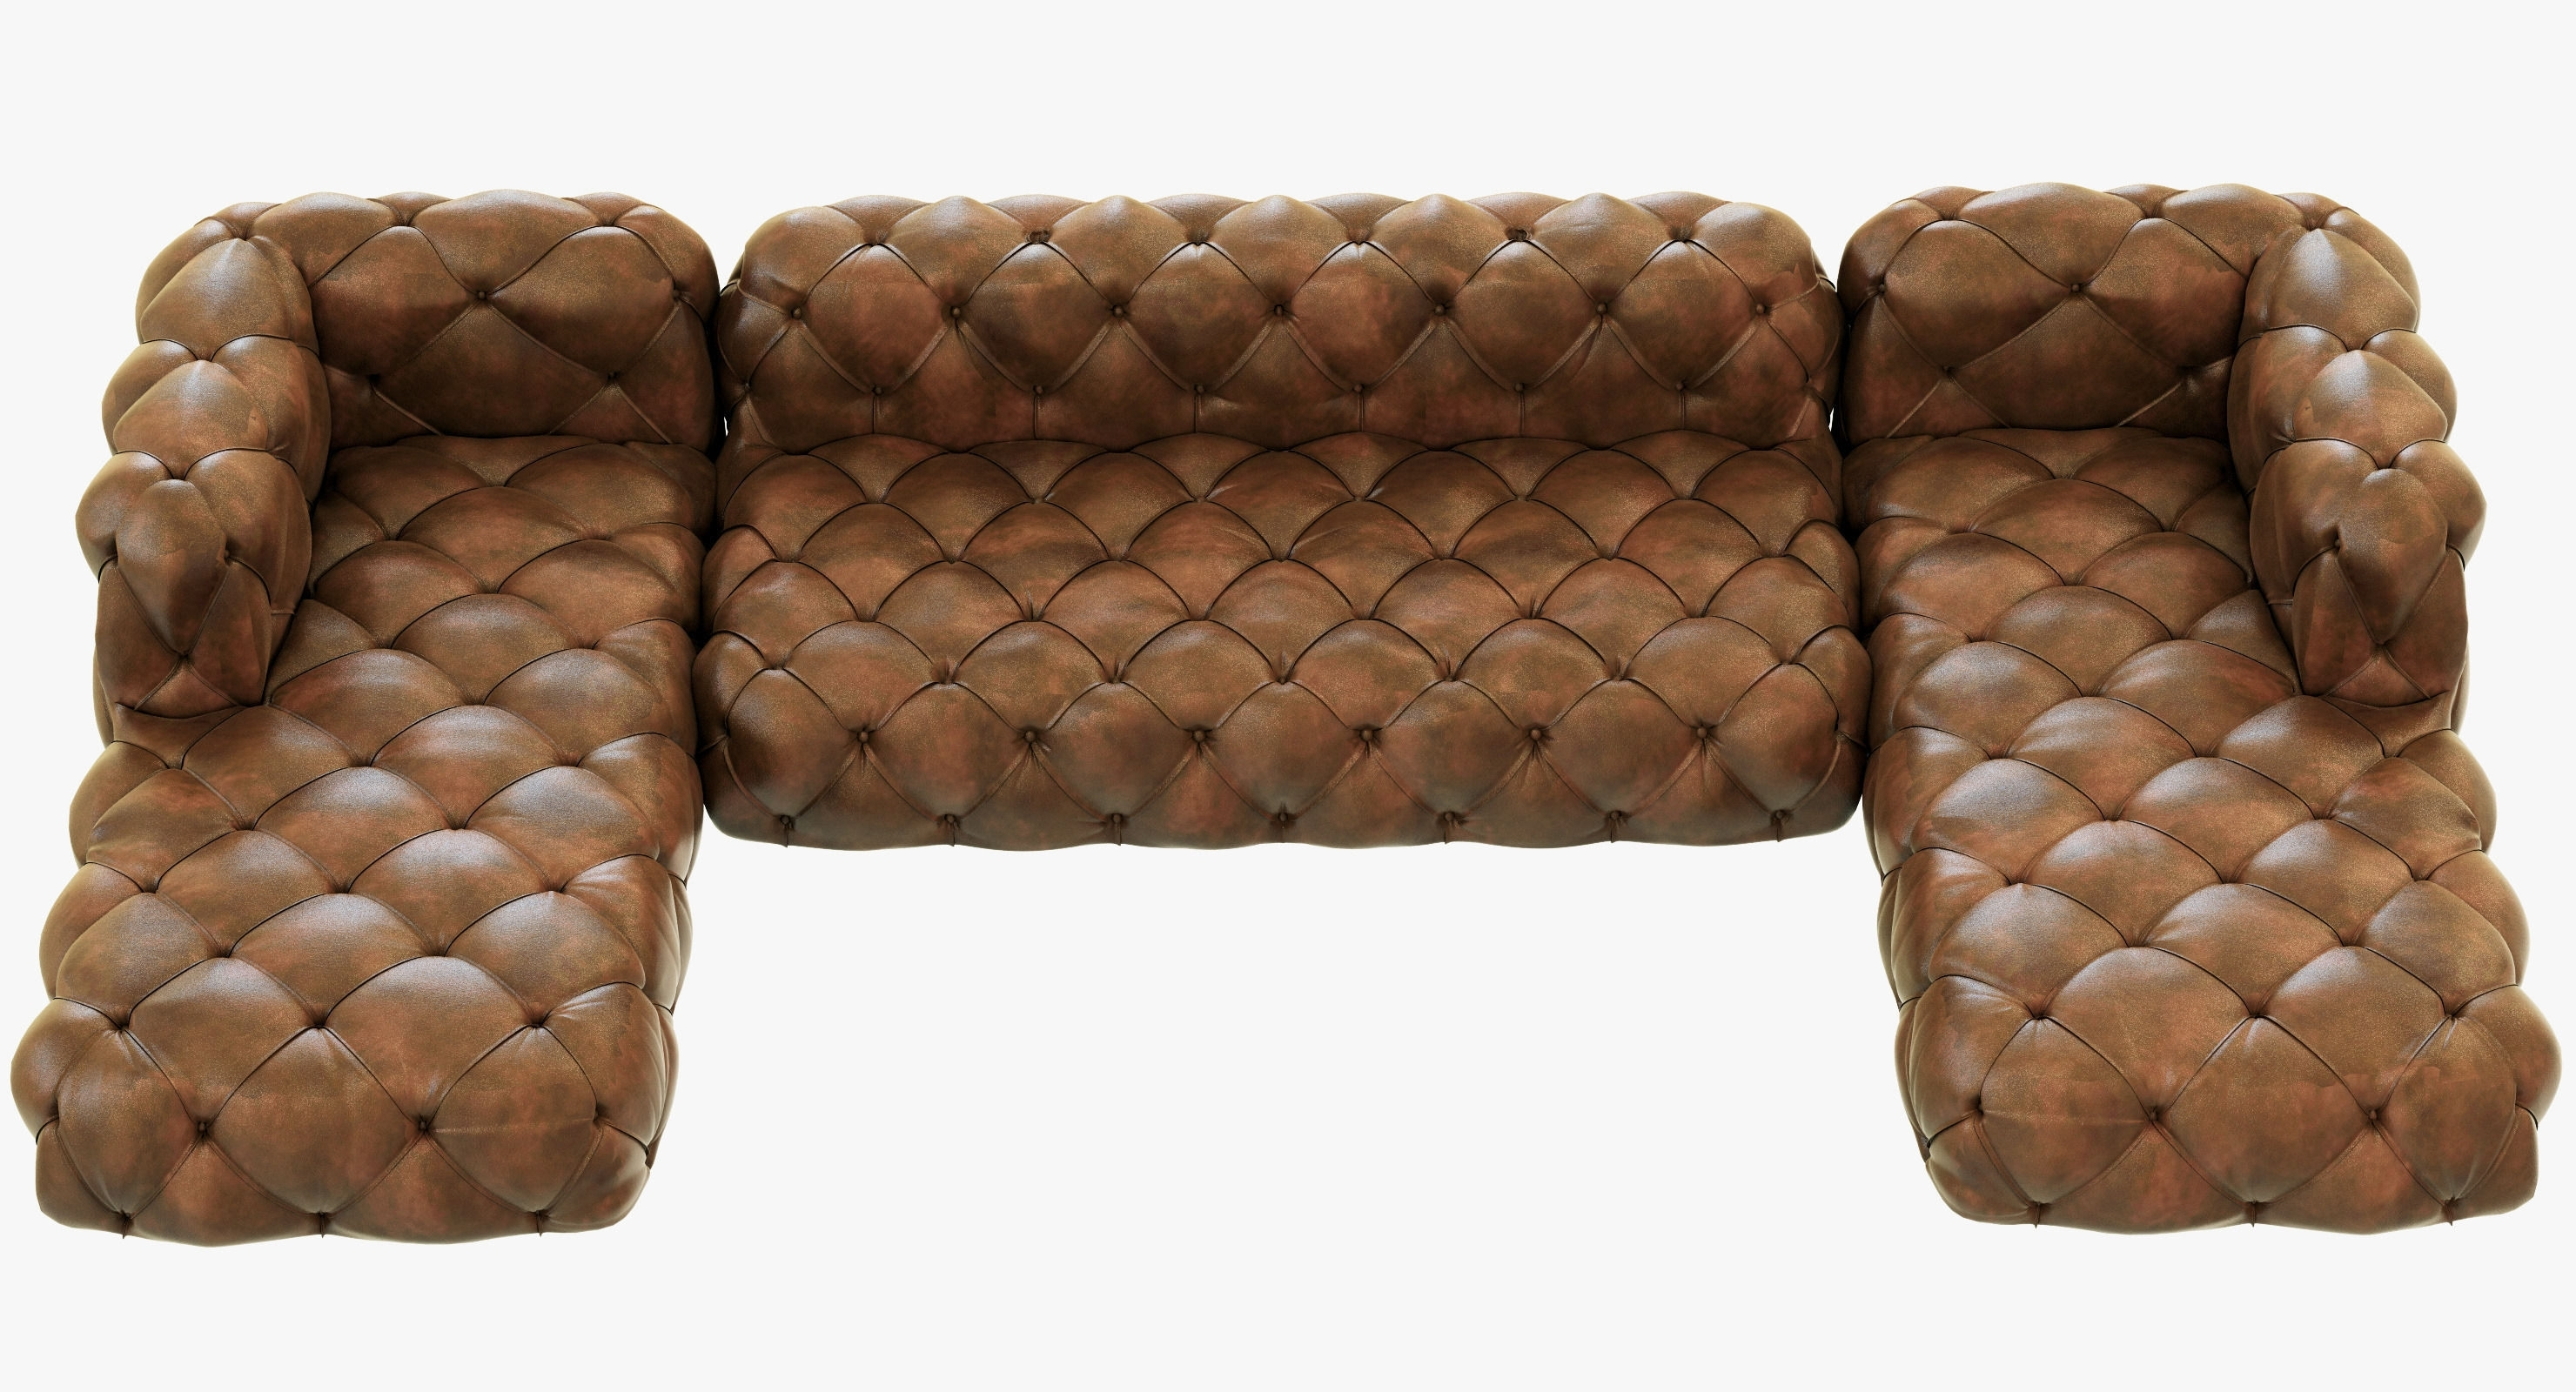 Restoration Hardware Soho Tufted Leather U Chaise Sectional 3D In Famous Tufted Leather Chaises (View 7 of 15)